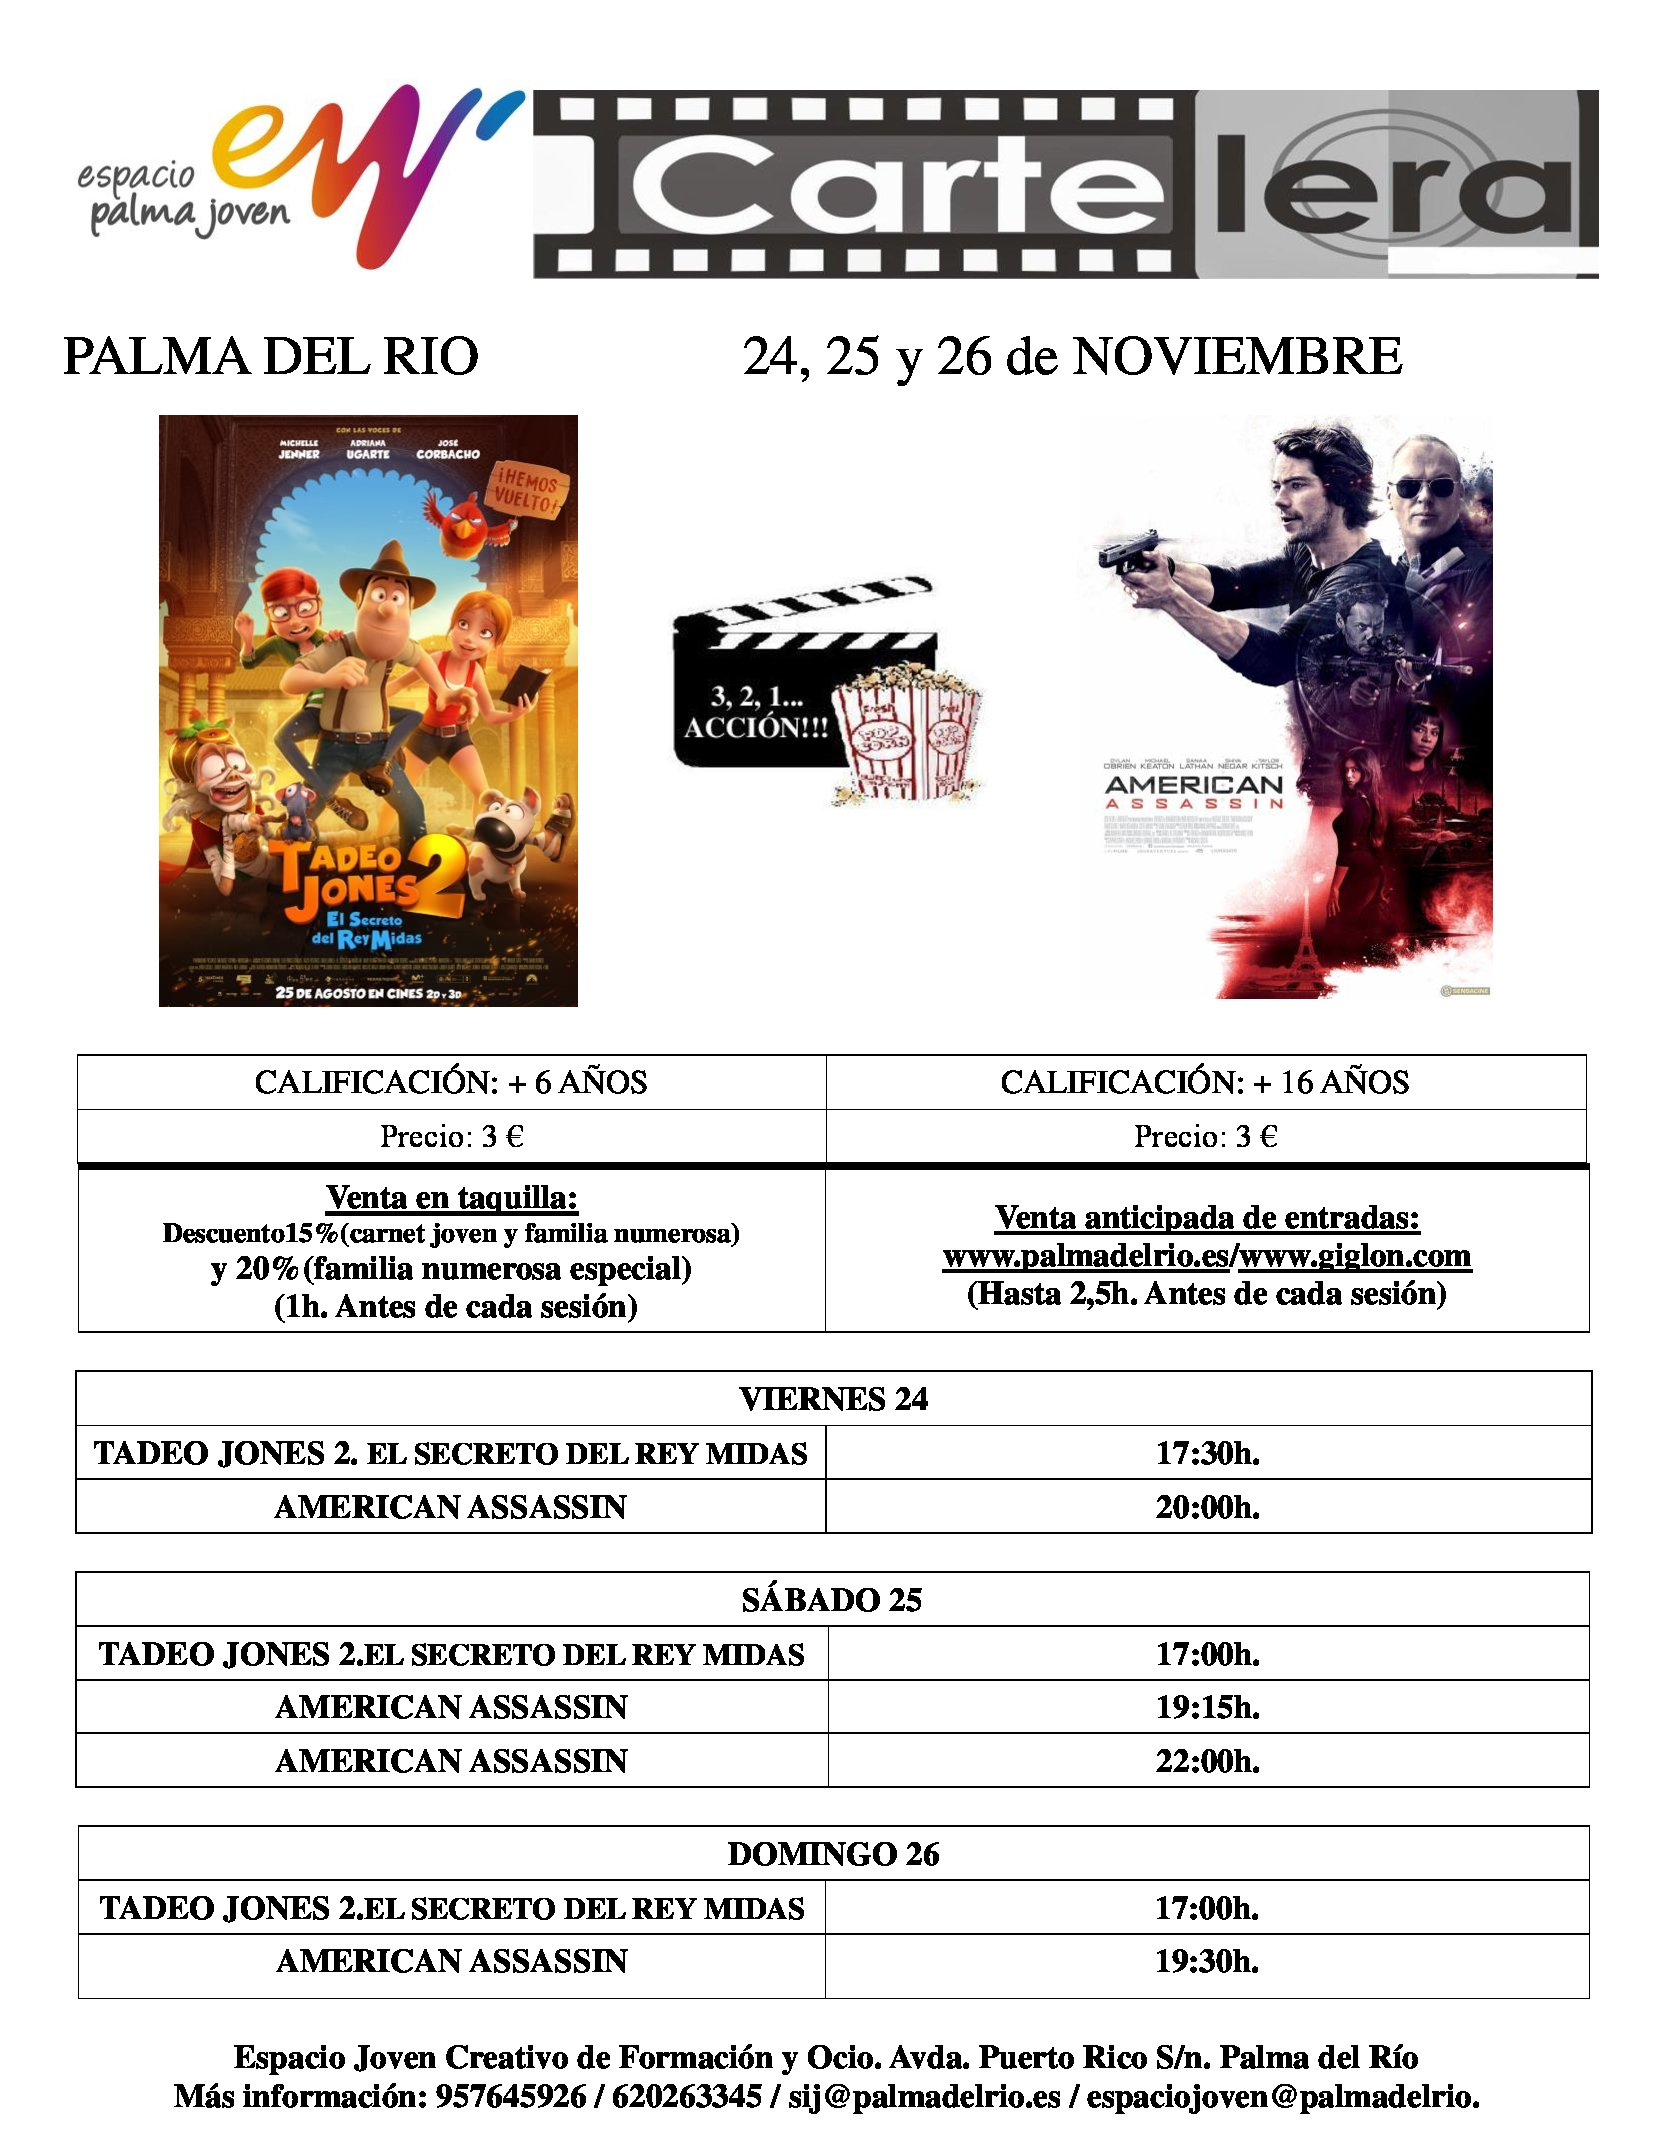 https://www.palmadelrio.es/sites/default/files/cartelera_24.25.26_nov_2017-_0.jpg